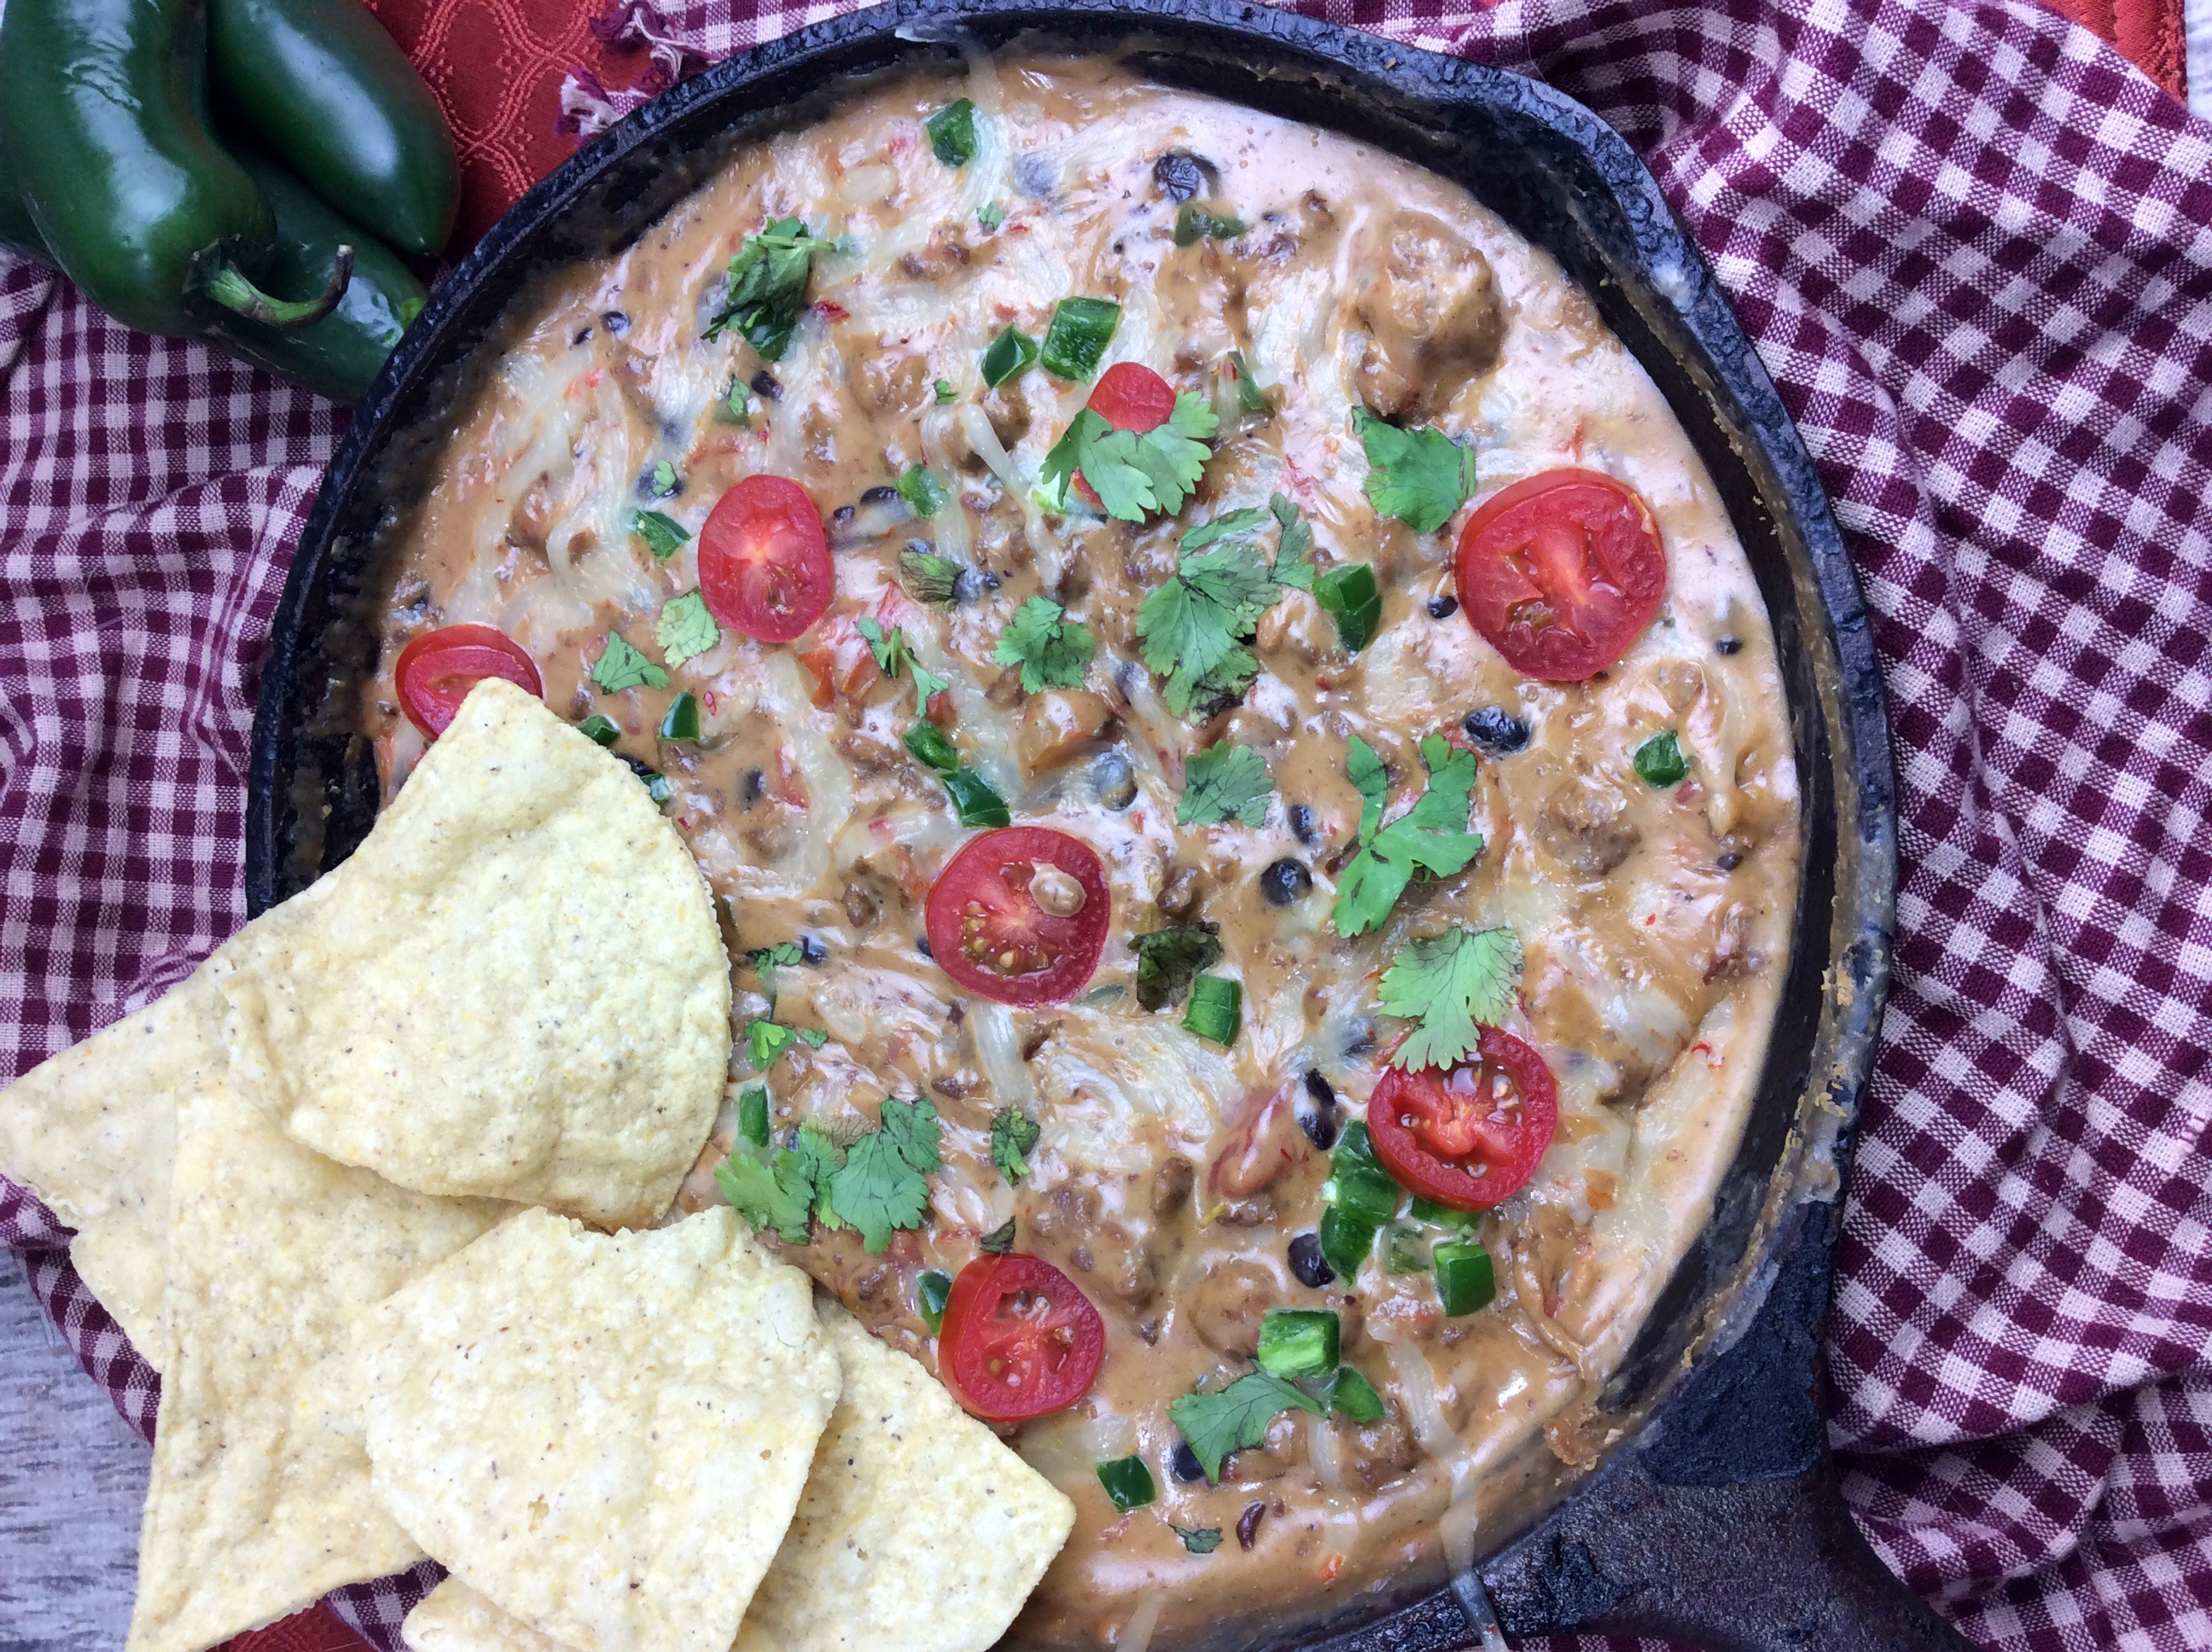 "Cowboy Queso dip Ingredients 1/2 lb. hot pork sausage salt and pepper to taste 1/4 cup of chicken broth 16 oz. Velveeta, cut into 1"" cubes 1/2 c. Shredded Pepper Jack cheese 1 (14.5-oz) can Rotel Tomatoes, undrained 1 cup black beans, drained and rinsed 1/4 cup chopped fresh cilantro 1-2 diced jalapeños seeds removed Directions: Browning the sausage in a medium skillet over medium heat. Crumble your sausage as you cook it. Looking for a good cheese dip recipe? I have just what you need. This Cowboy Queso Dip recipe is perfect if you are looking for a spicy cheese dip or a cheese dip with meat in it. This is going to be a crowd pleaser recipe for any picnic or get together. When the sausage is cooked add in the chicken broth and allow to cook down/reduce for 3-4 minutes, stirring occasionally. Now add your cheese and stir to combine. Looking for a good cheese dip recipe? I have just what you need. This Cowboy Queso Dip recipe is perfect if you are looking for a spicy cheese dip or a cheese dip with meat in it. This is going to be a crowd pleaser recipe for any picnic or get together. It should take about 4-5 minutes for all the cheese to melt in. Once melted, stir in the tomatoes, beans, jalapeños and cilantro. Looking for a good cheese dip recipe? I have just what you need. This Cowboy Queso Dip recipe is perfect if you are looking for a spicy cheese dip or a cheese dip with meat in it. This is going to be a crowd pleaser recipe for any picnic or get together."